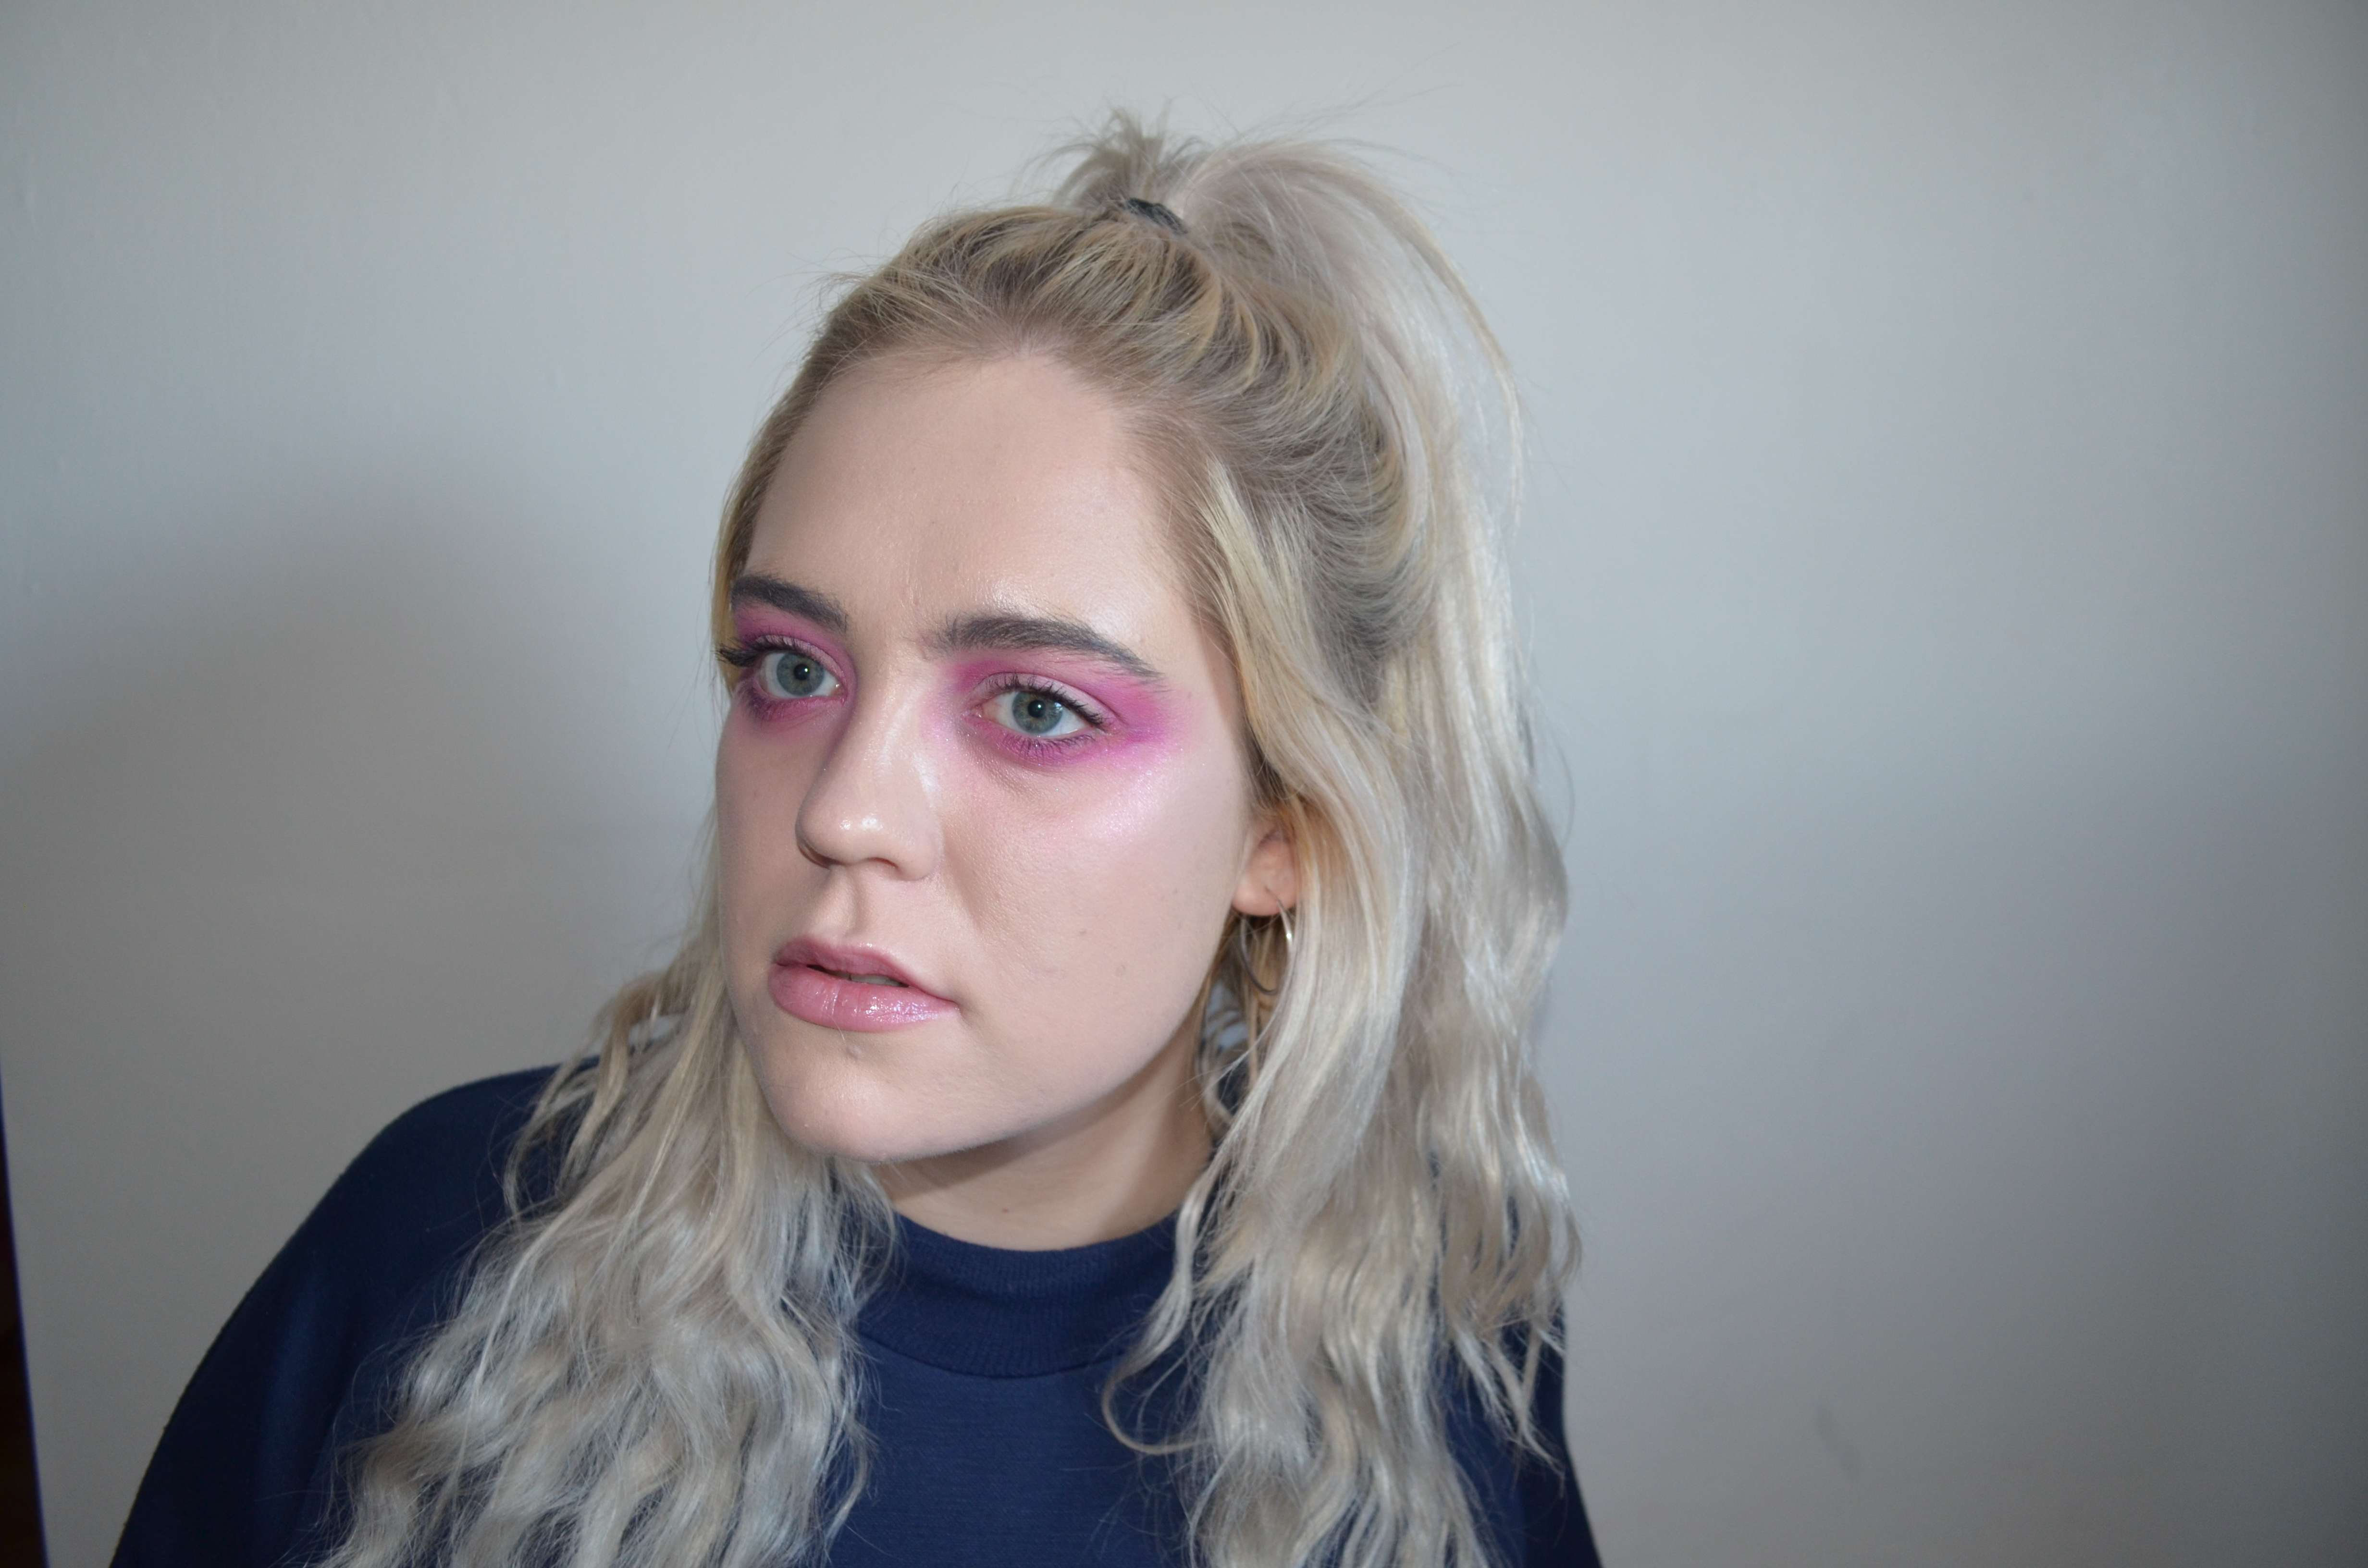 Here are two ways to use pink eyeshadow that are far from intimidating